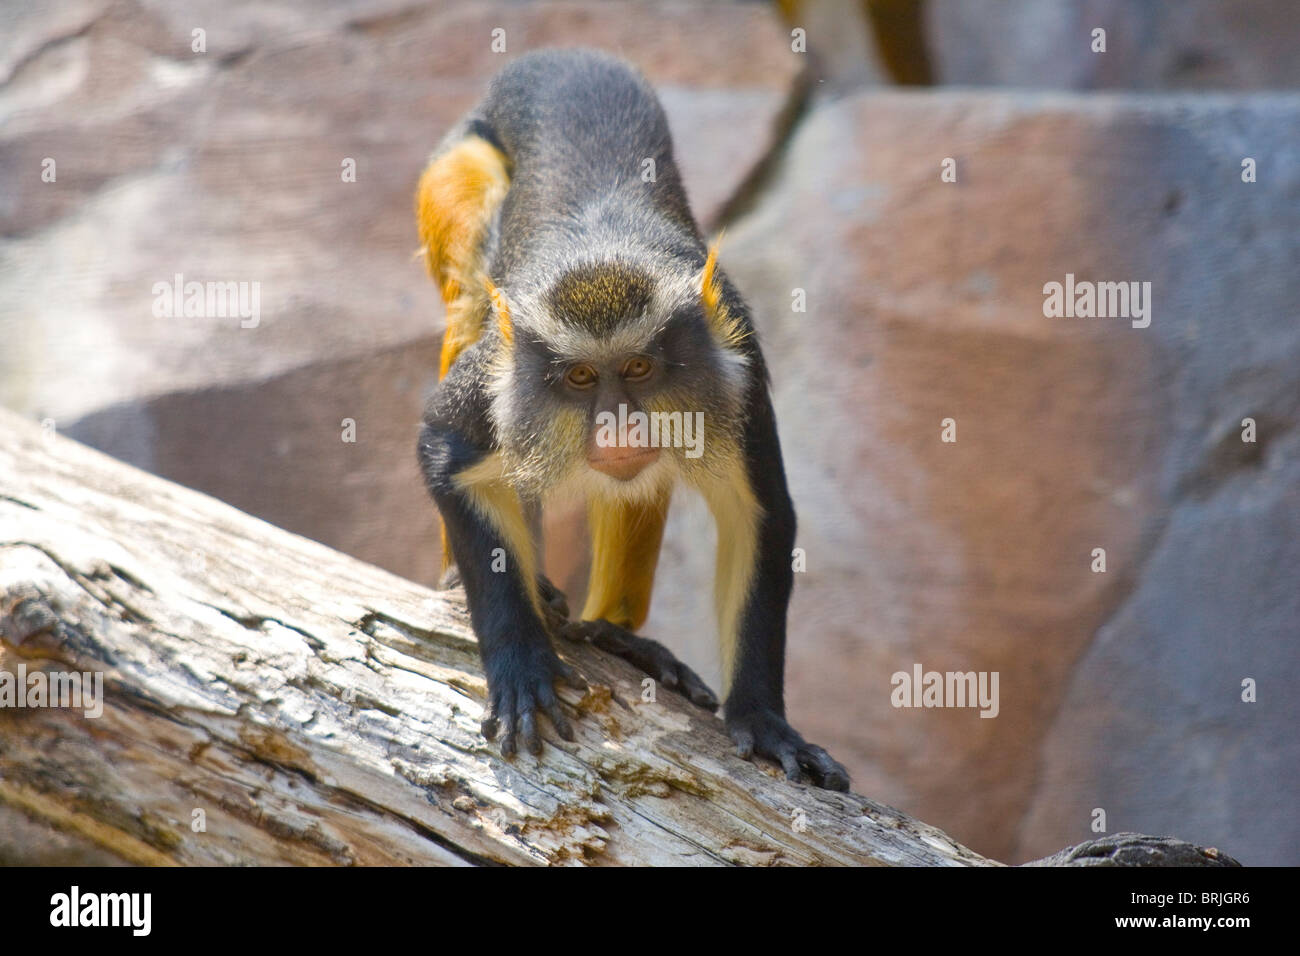 Henry Doorly Zoo - Wolf's Mona Monkey Photo Stock